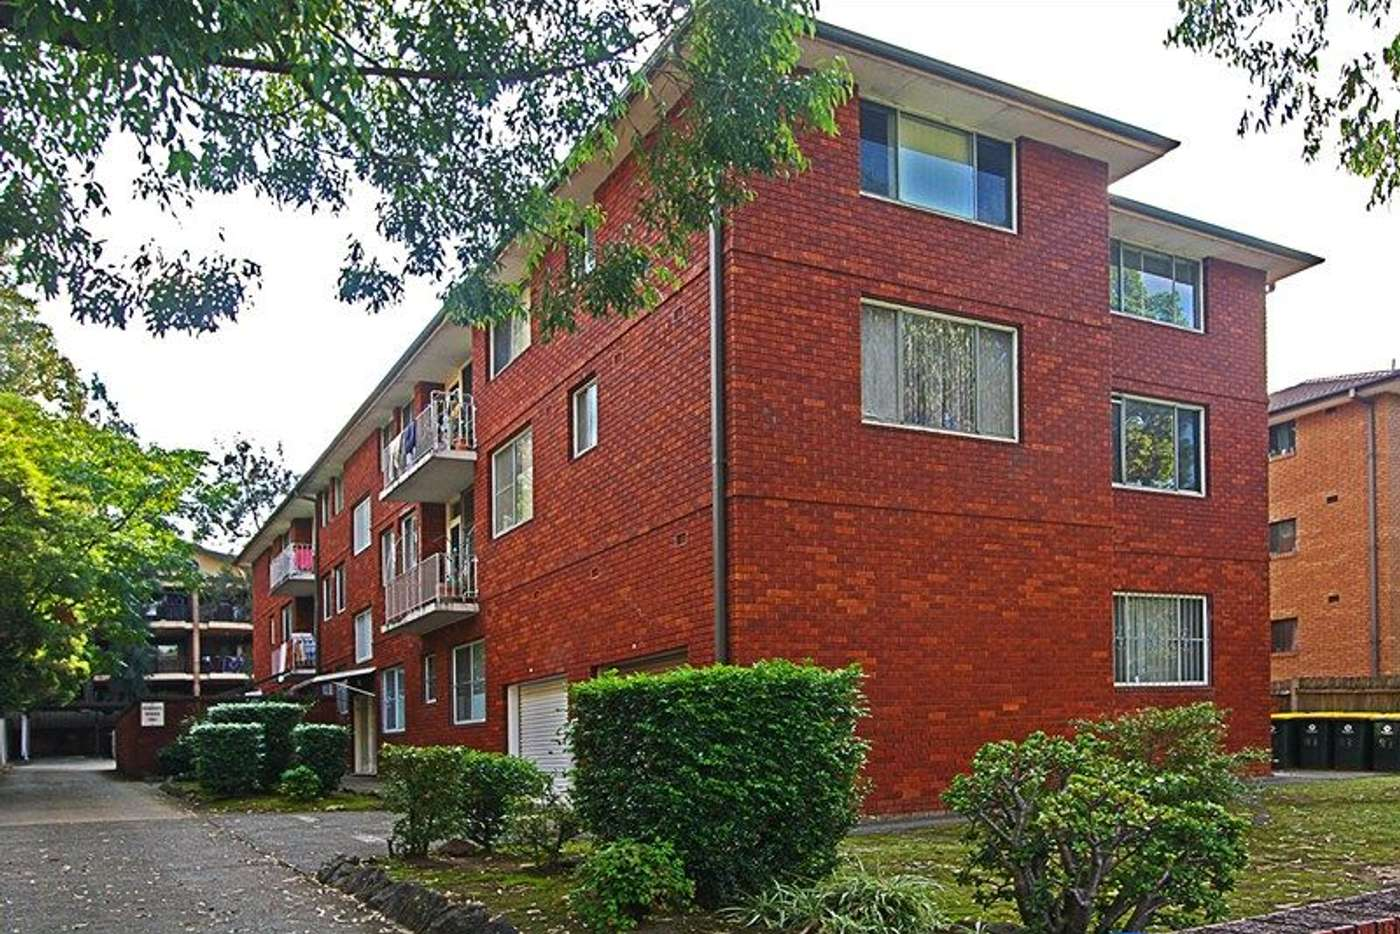 Main view of Homely unit listing, 11/83 Lane Street, Wentworthville NSW 2145